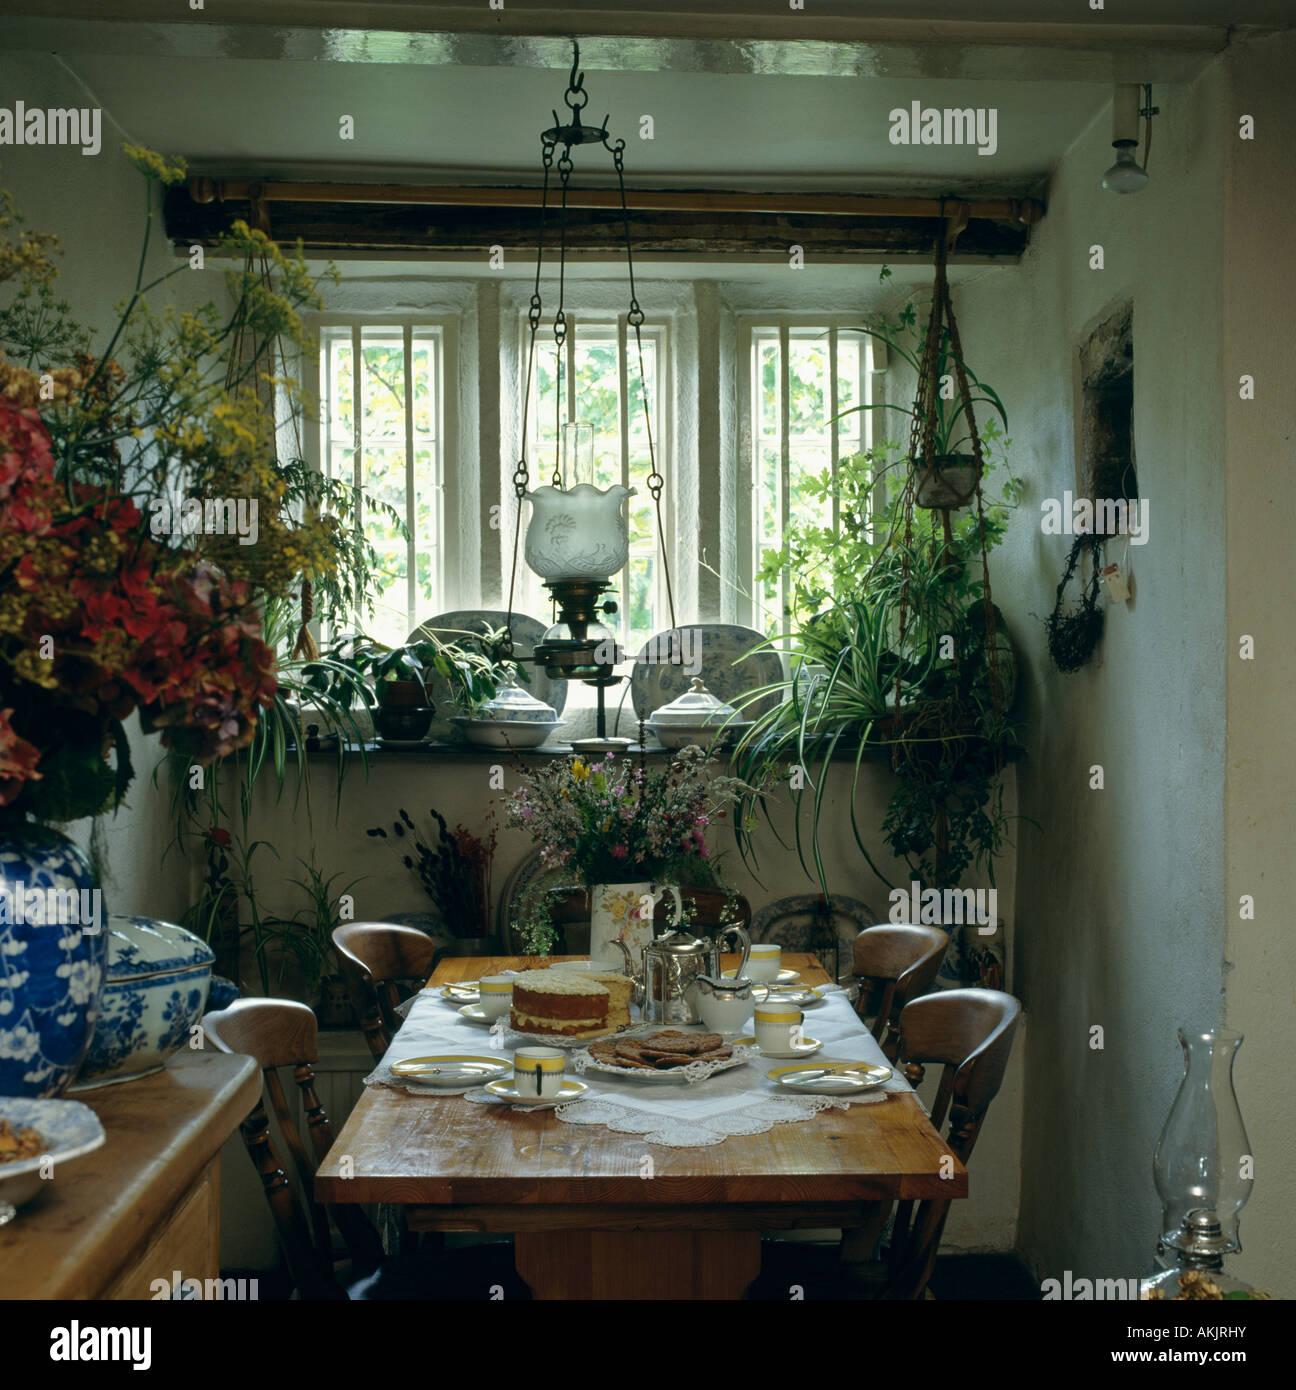 victorian ceiling lamp and green houseplants in small cottage dining